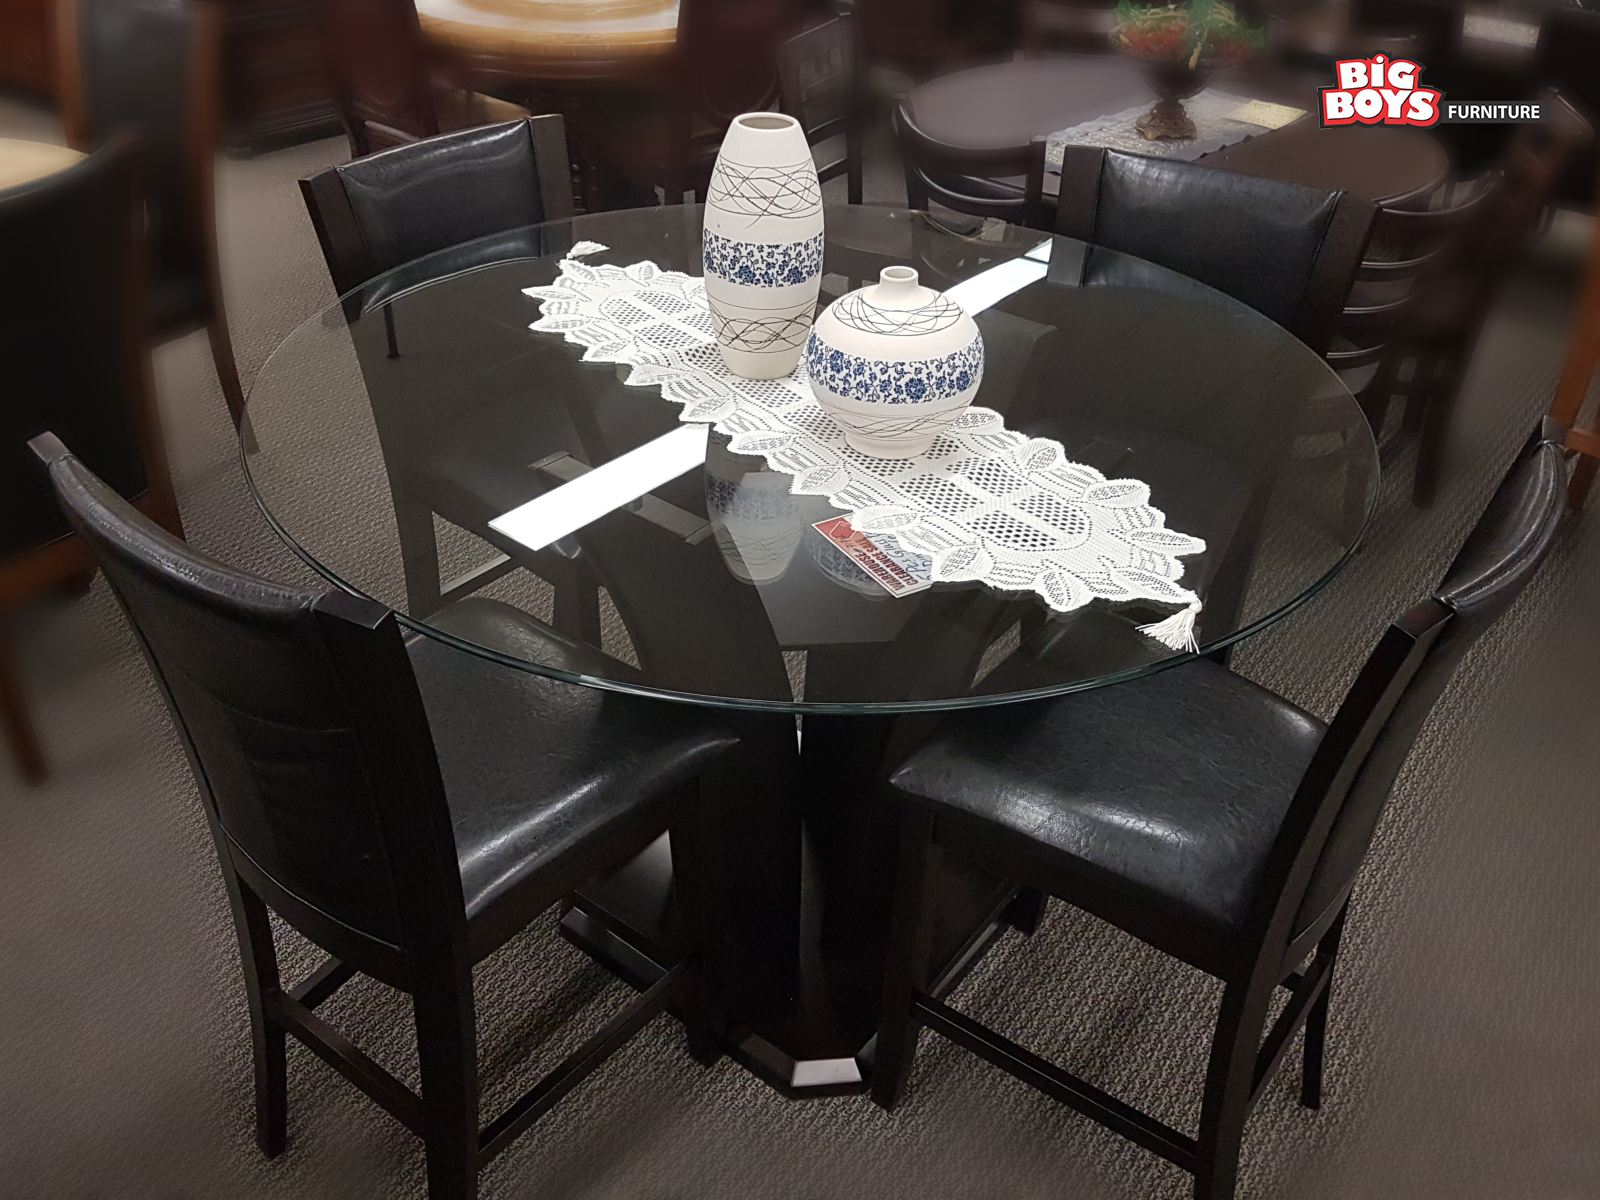 Best designs of Dining Tables available at Big Boys Furniture